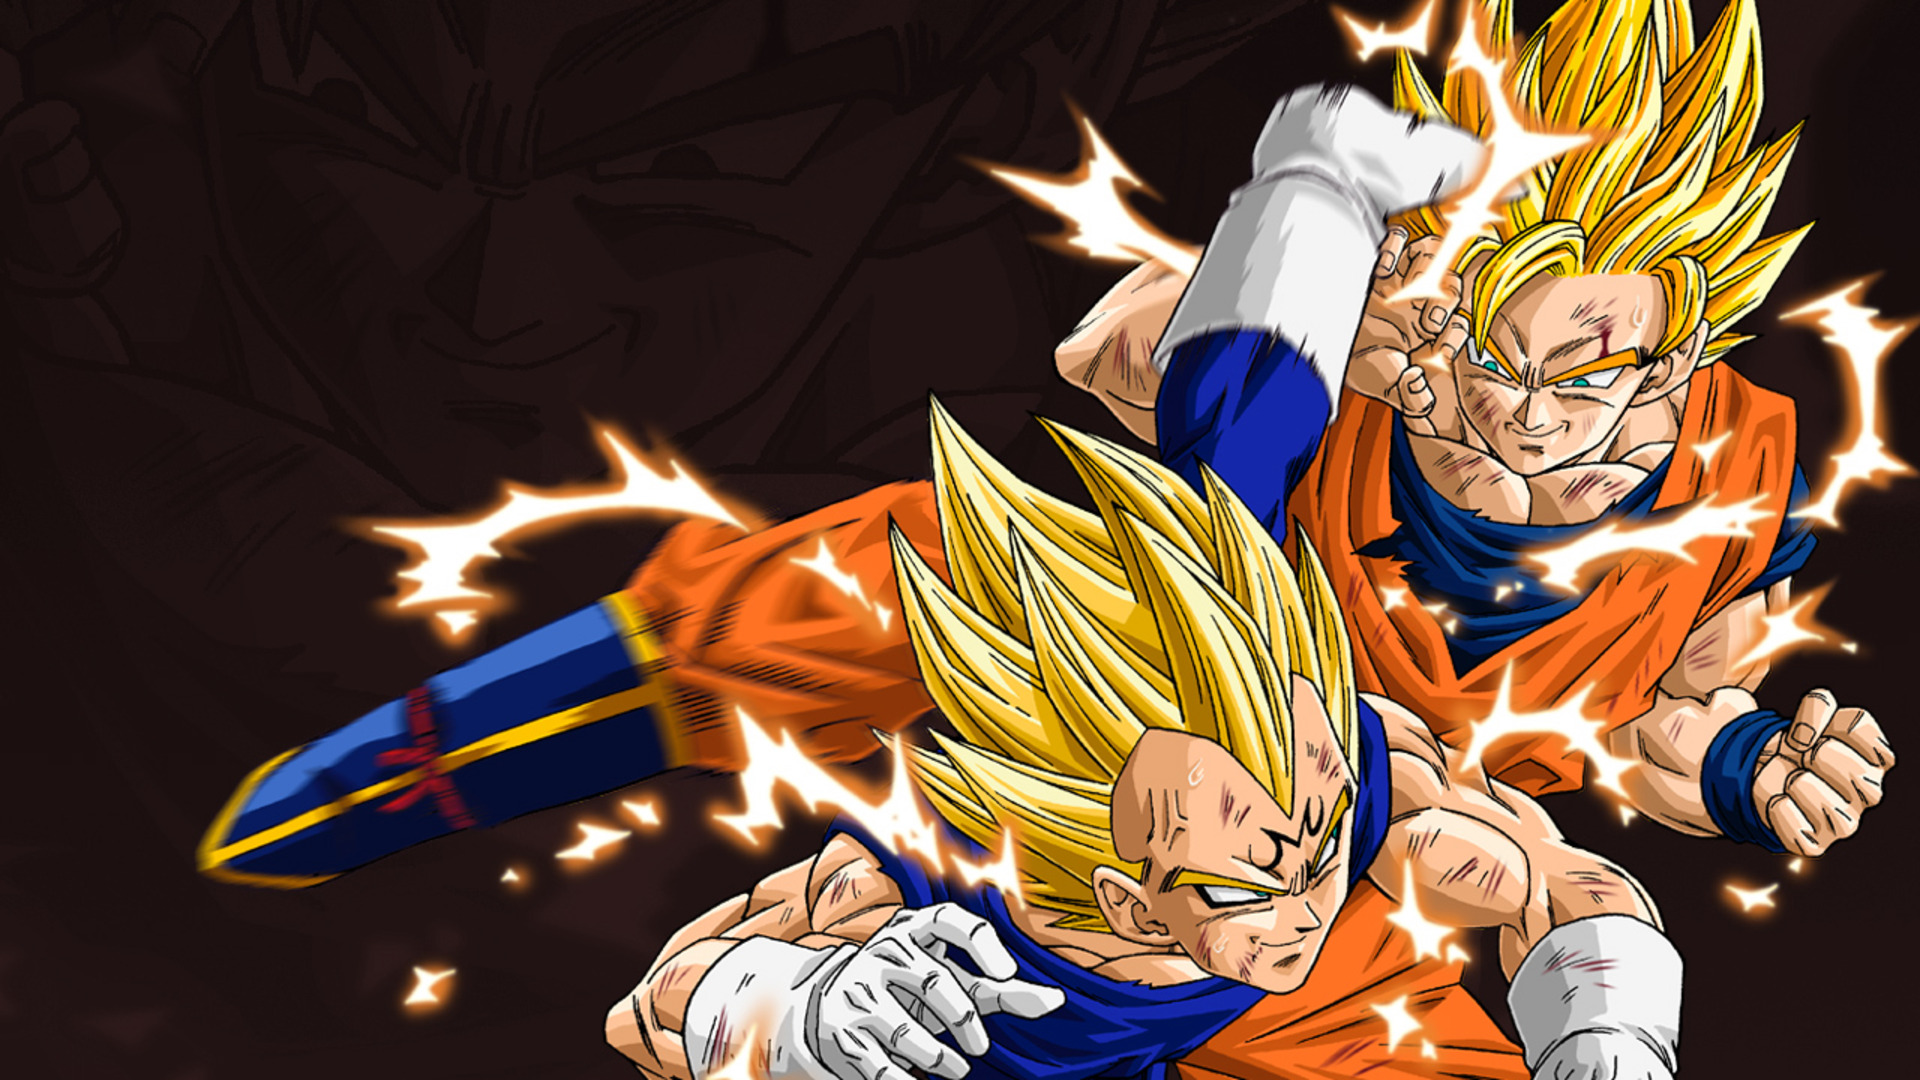 The best quality and size only with us! Dragon Ball Z HD Wallpaper | Background Image | 1920x1080